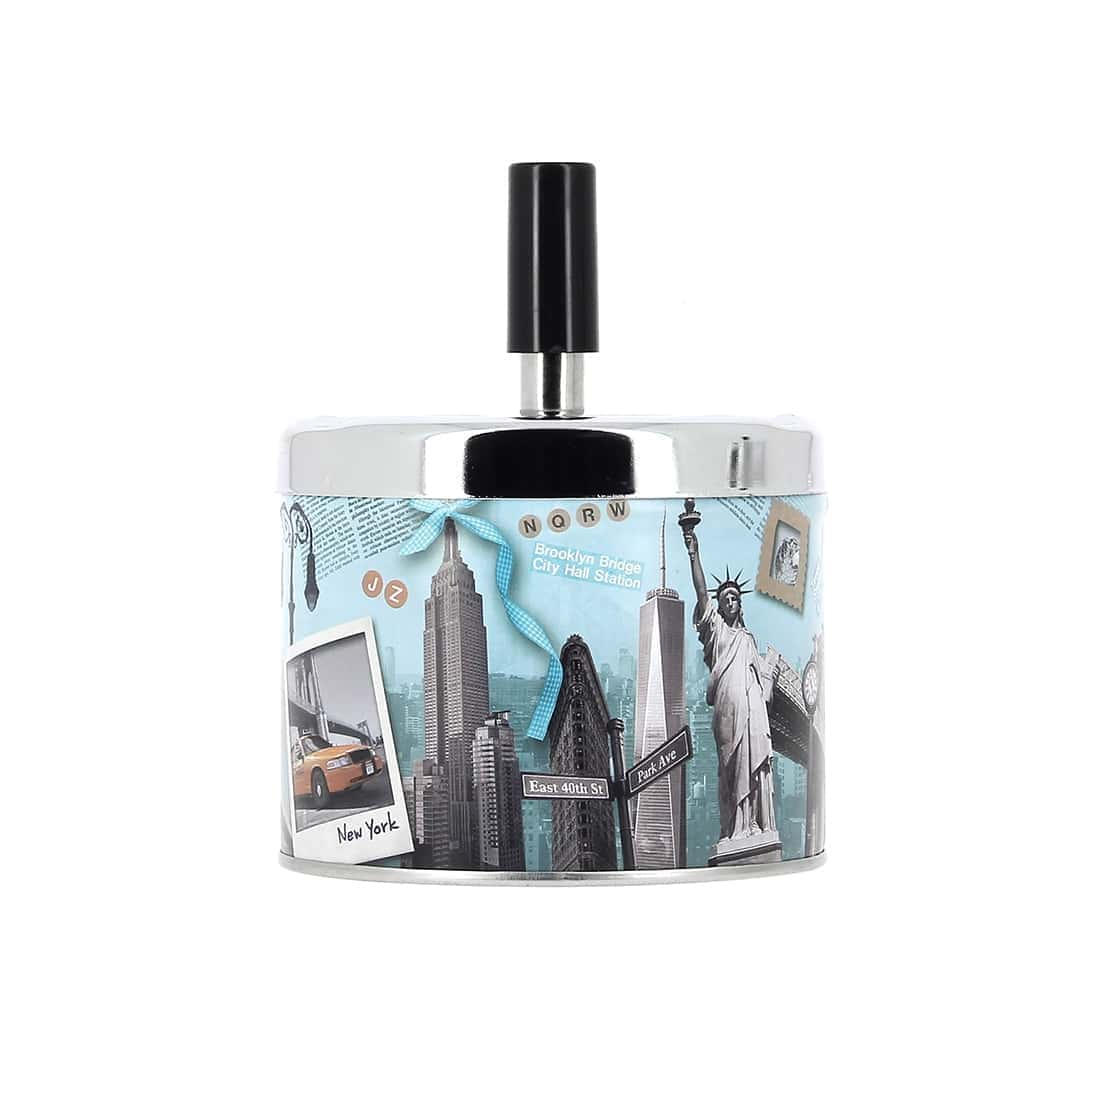 Lampe Berger New York Cendrier Poussoir New York 4 50